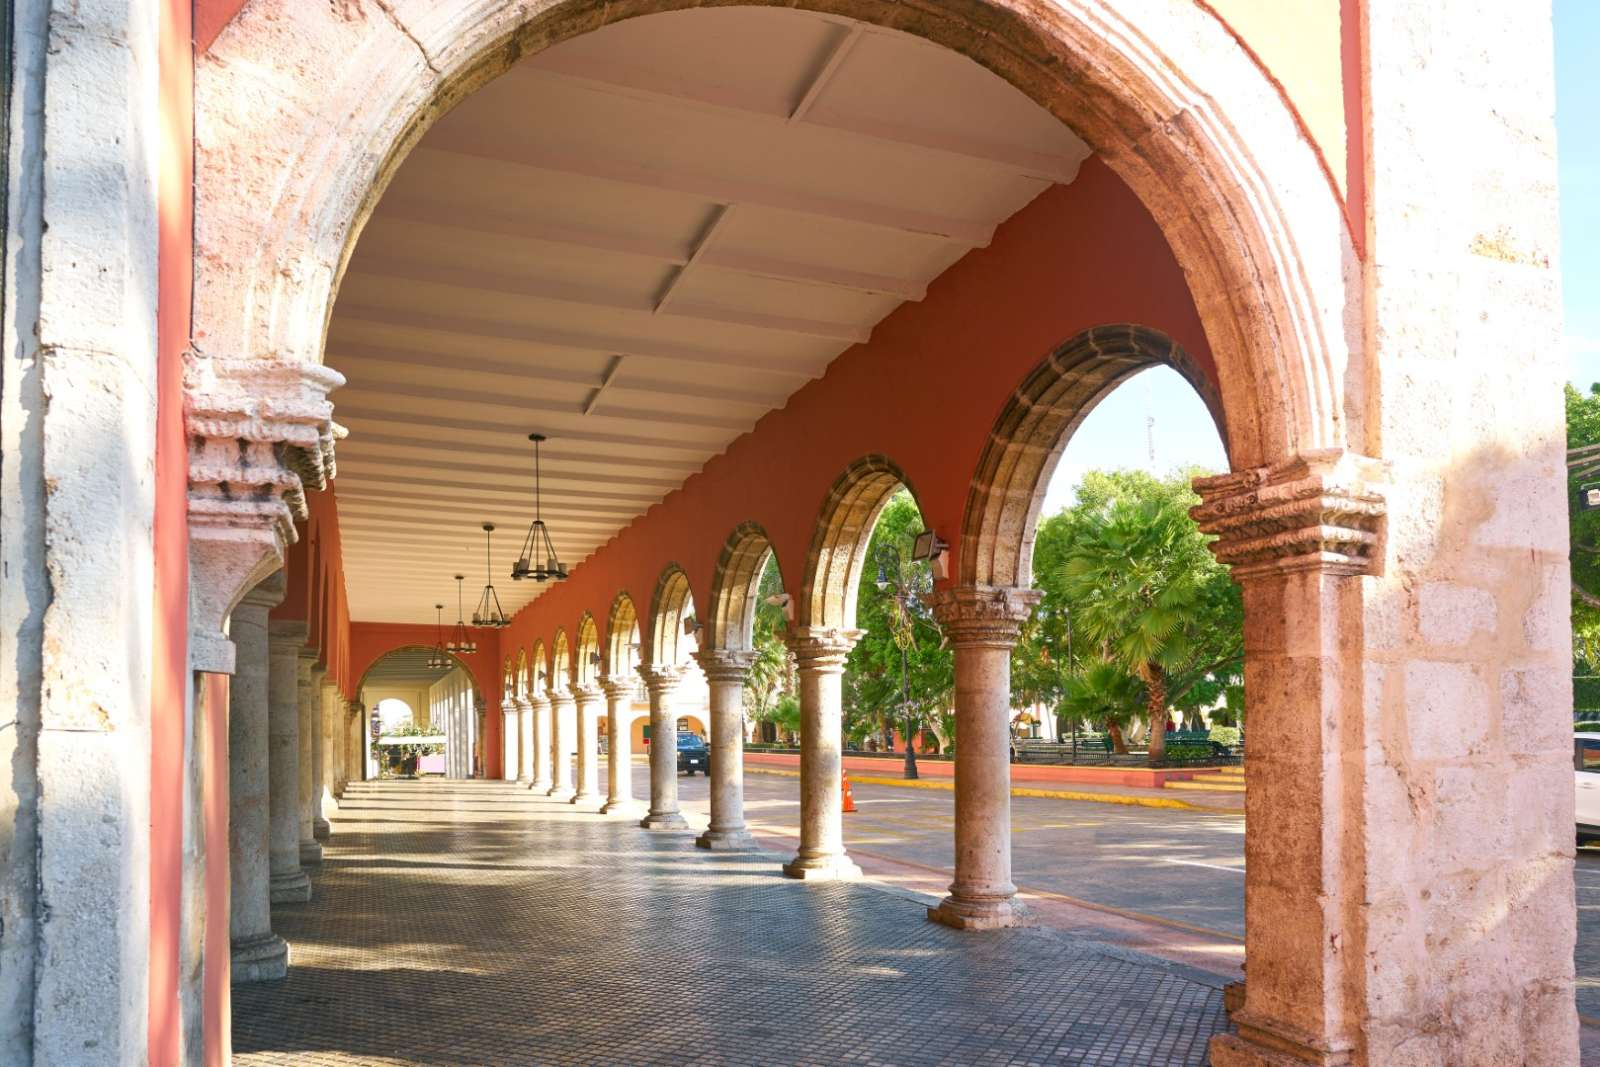 Colonade in Merida, Yucatan